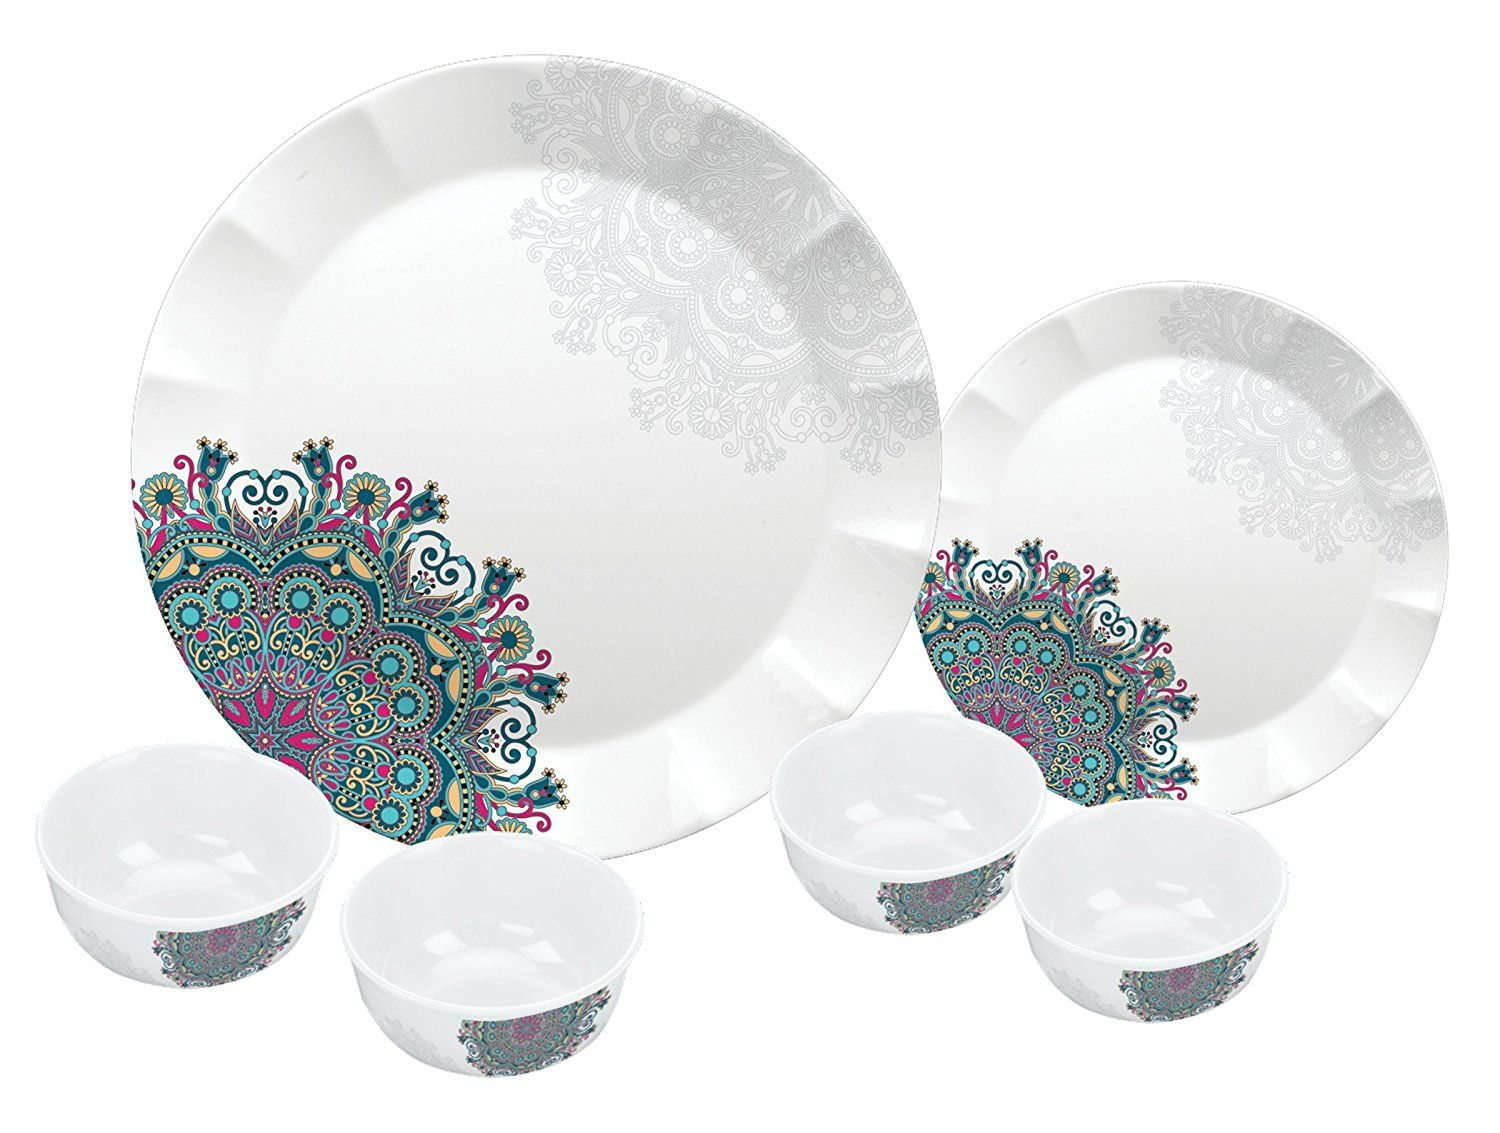 Servewell Ethnicity Dora Dinner Set 24-Pieces - Best Home and Kitchen Store  sc 1 st  Pinterest & Servewell Ethnicity Dora Dinner Set 24-Pieces - Best Home and ...